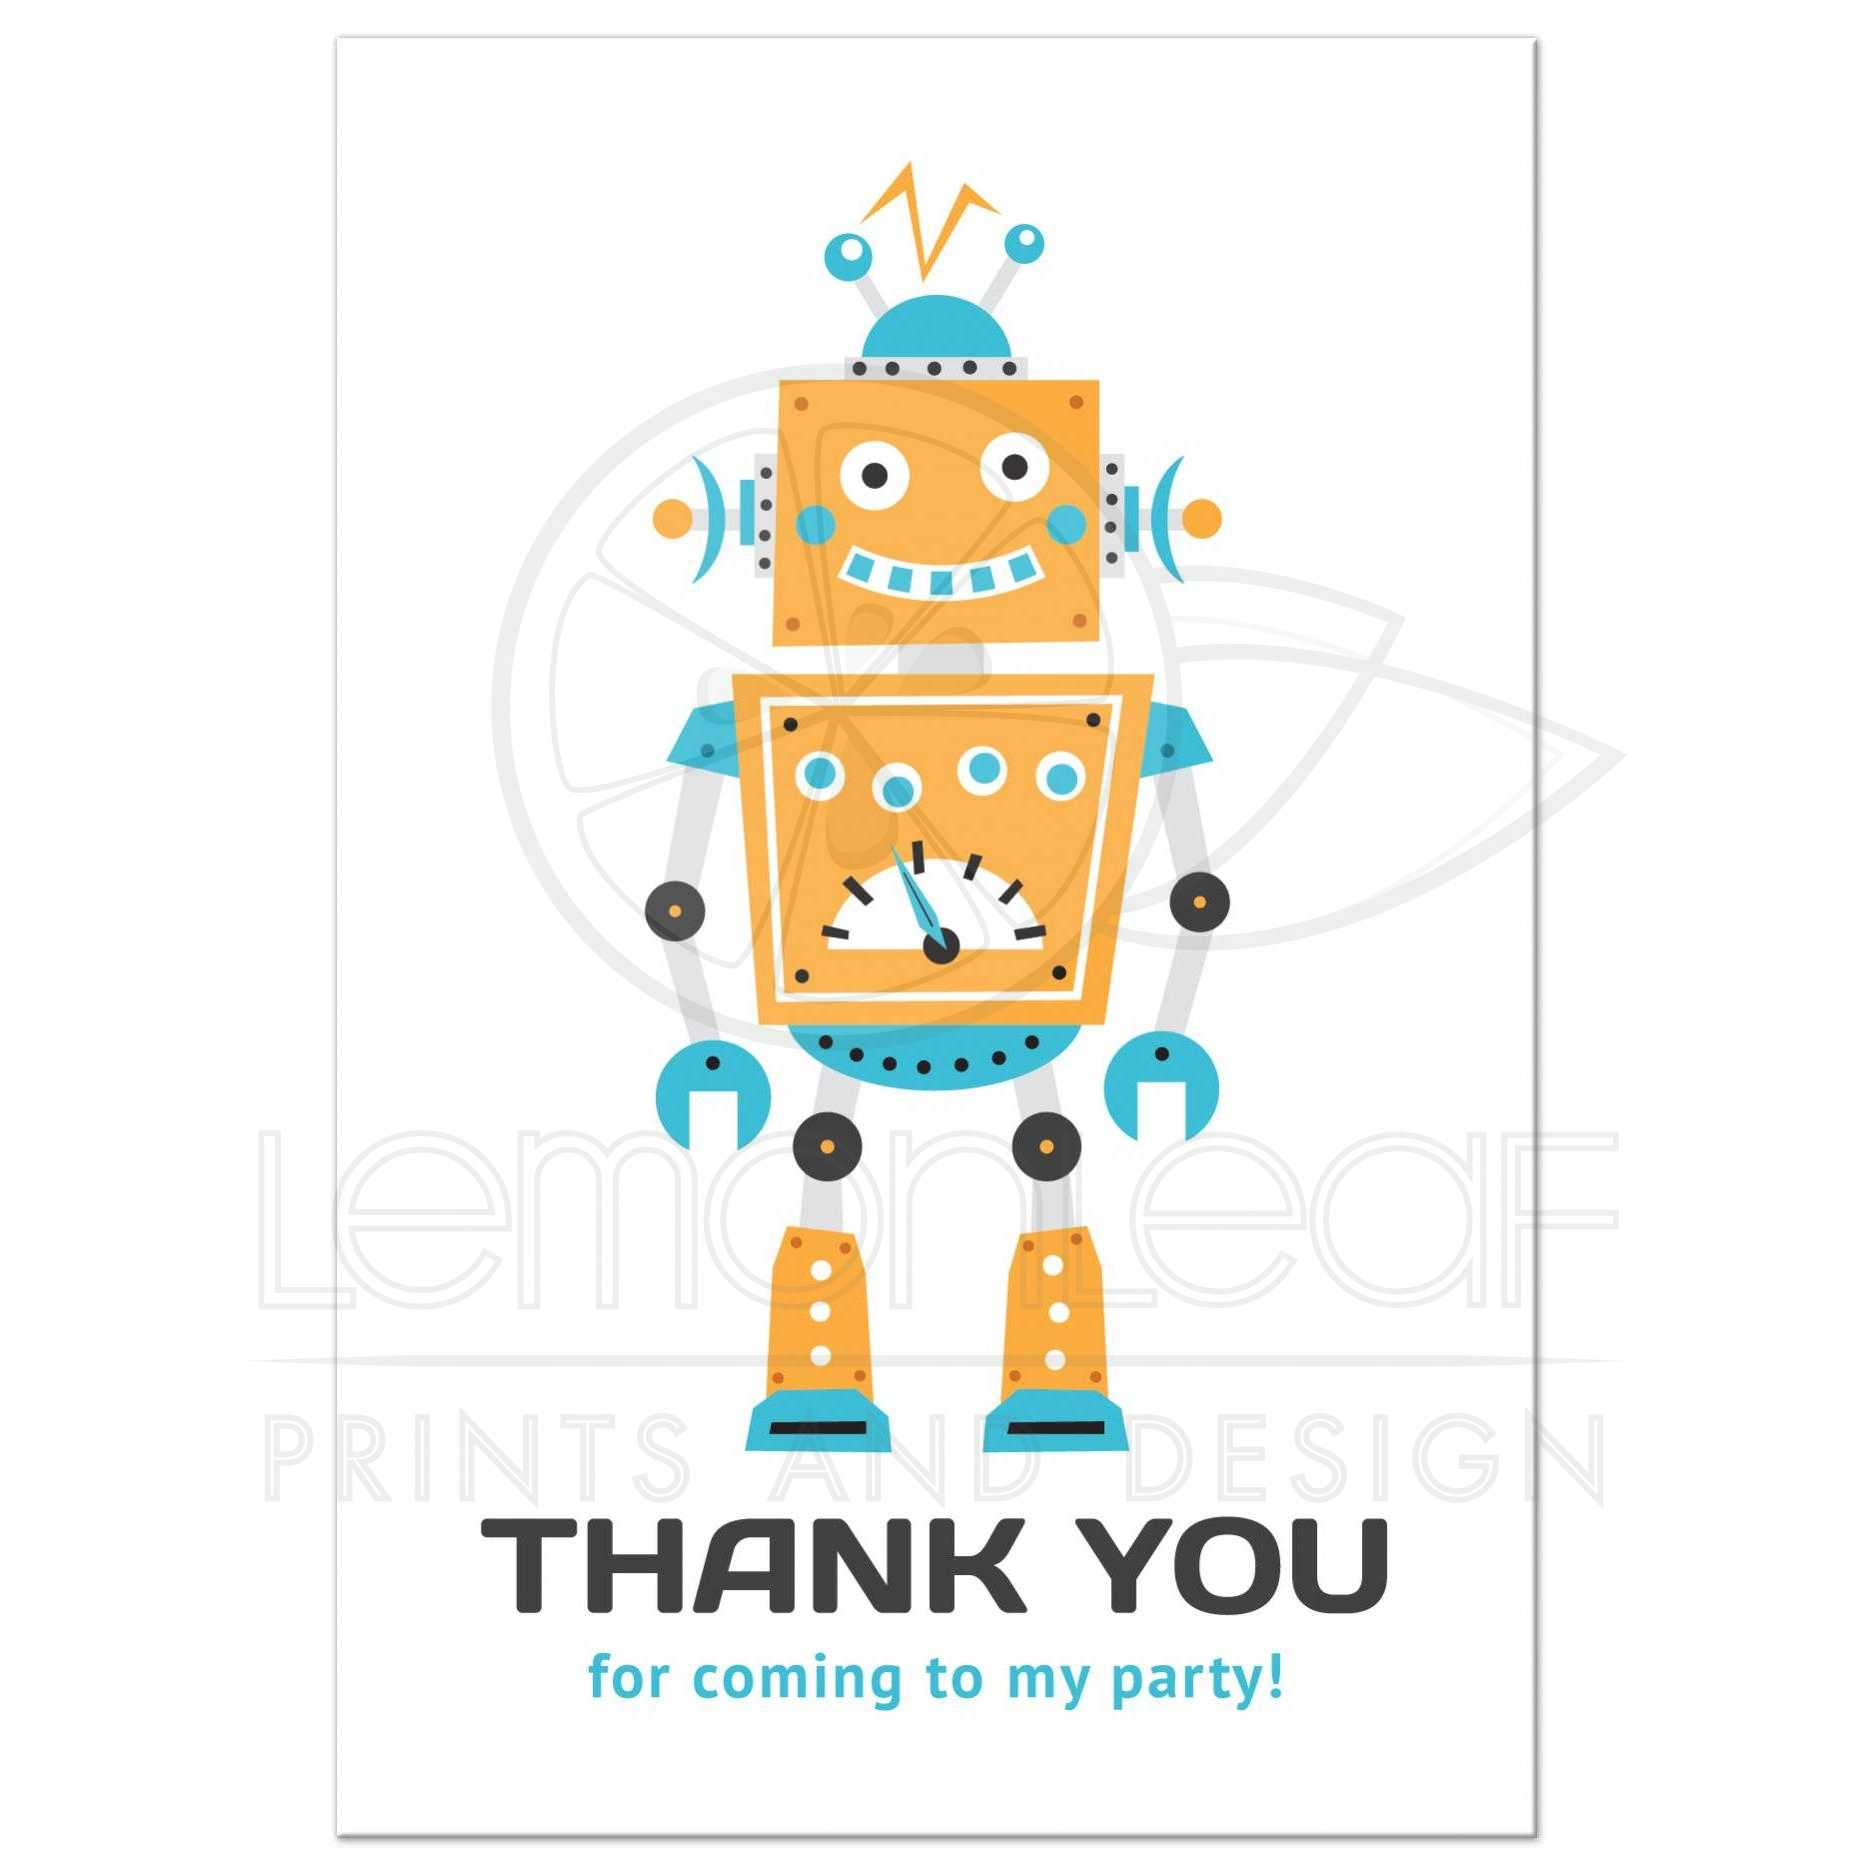 Sophisticated Kids Parties Robot Med Thank You Coming To My Party Postcard Birthday Thank You Cards Printable Birthday Thank You Cards Online Robot Party Thank You Card cards Birthday Thank You Cards